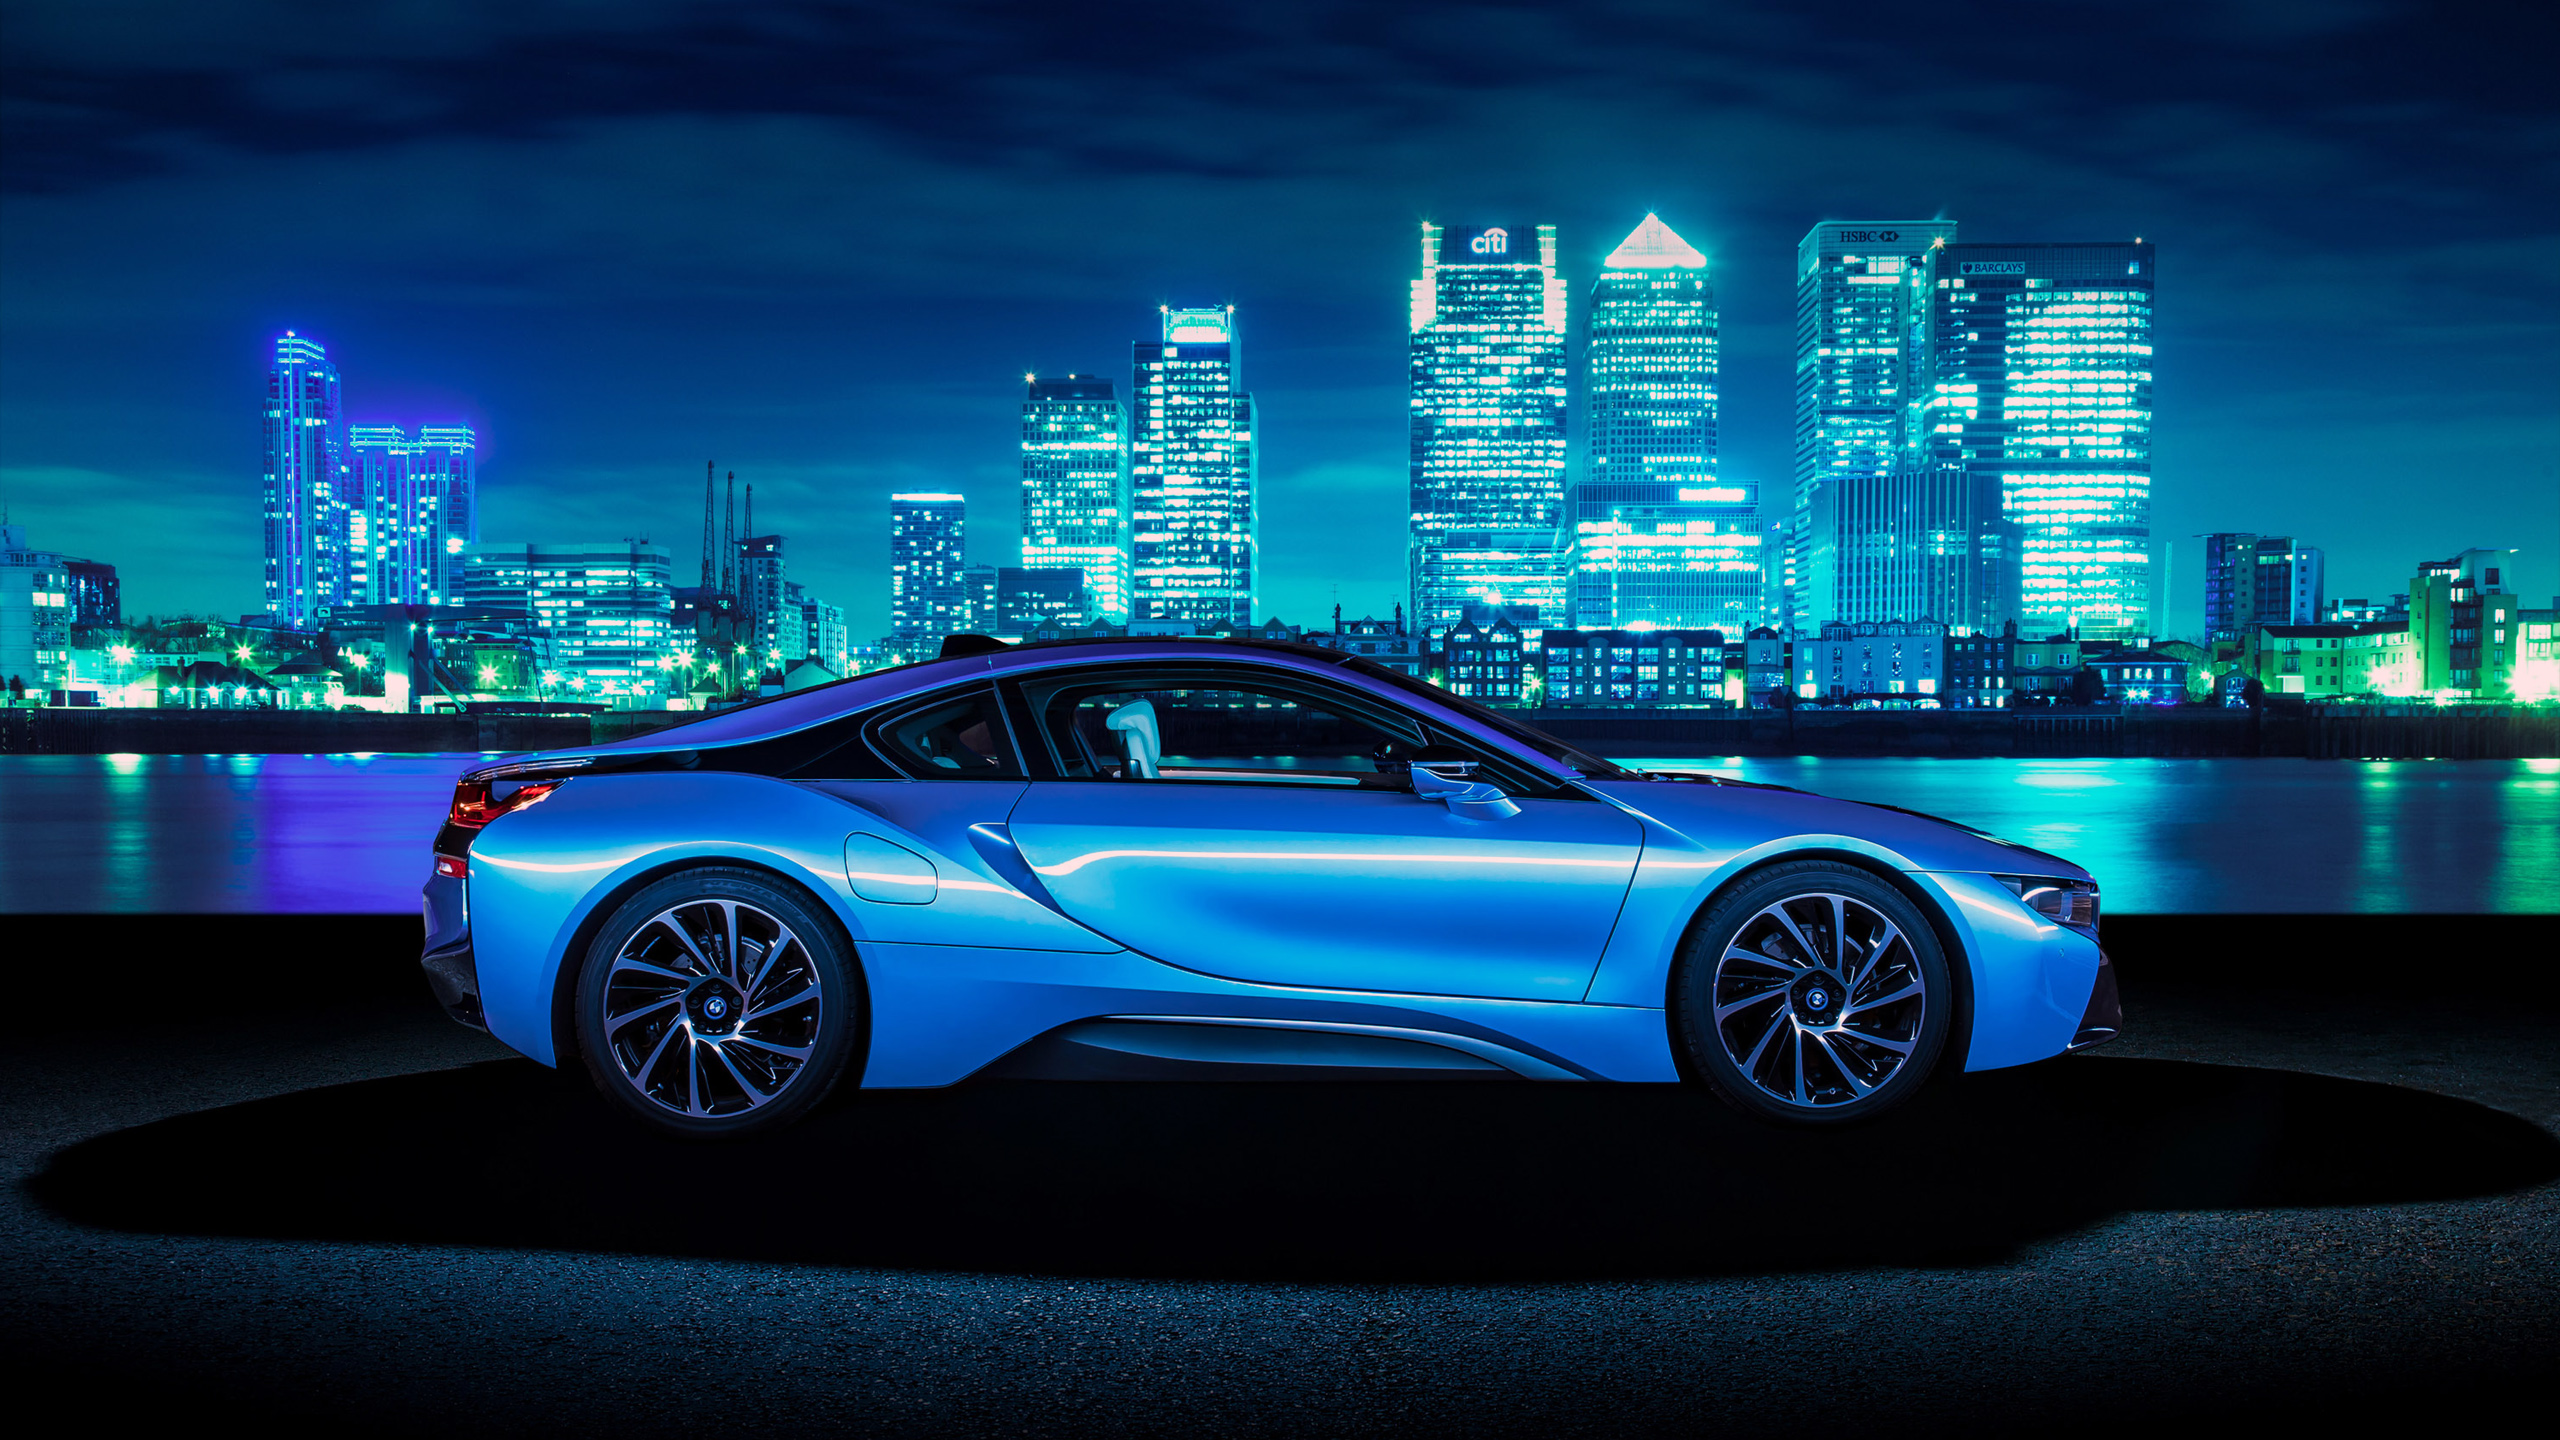 Bmw I Hd Wallpapers Backgrounds Wallpaper Abyss Bmw I Wallpaper Hd